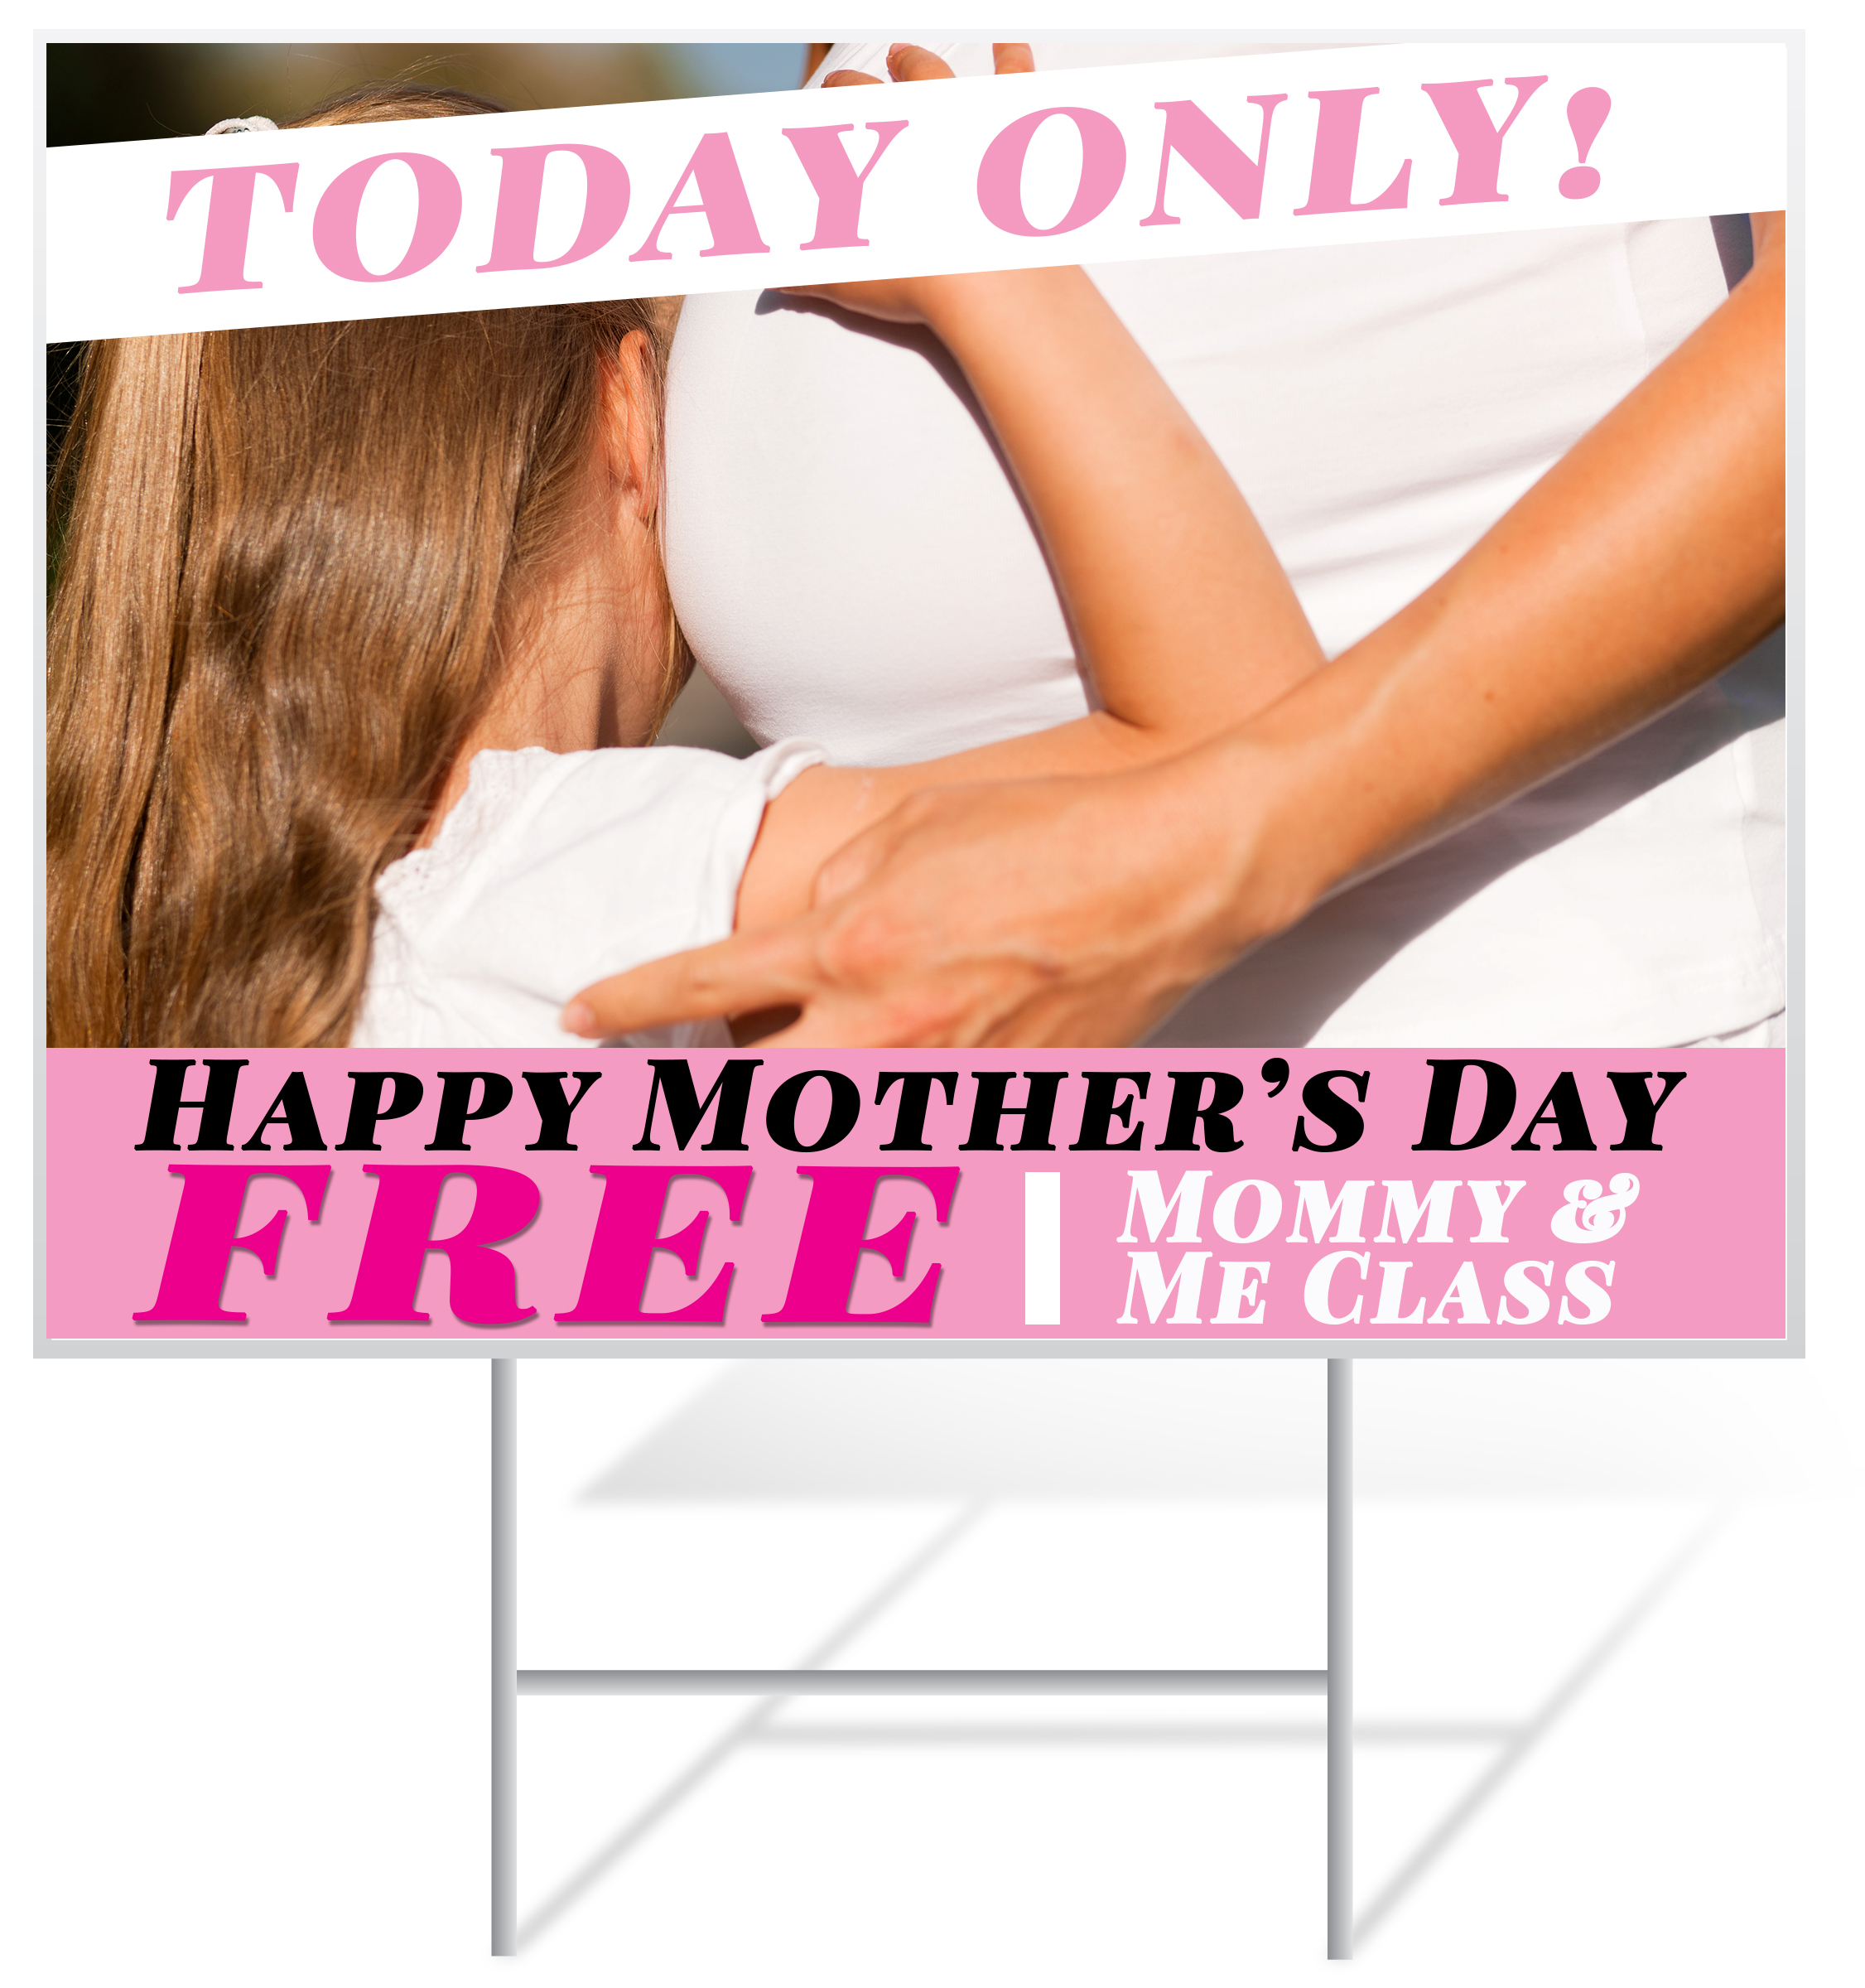 Mother's Day Lawn Sign Example | LawnSigns.com